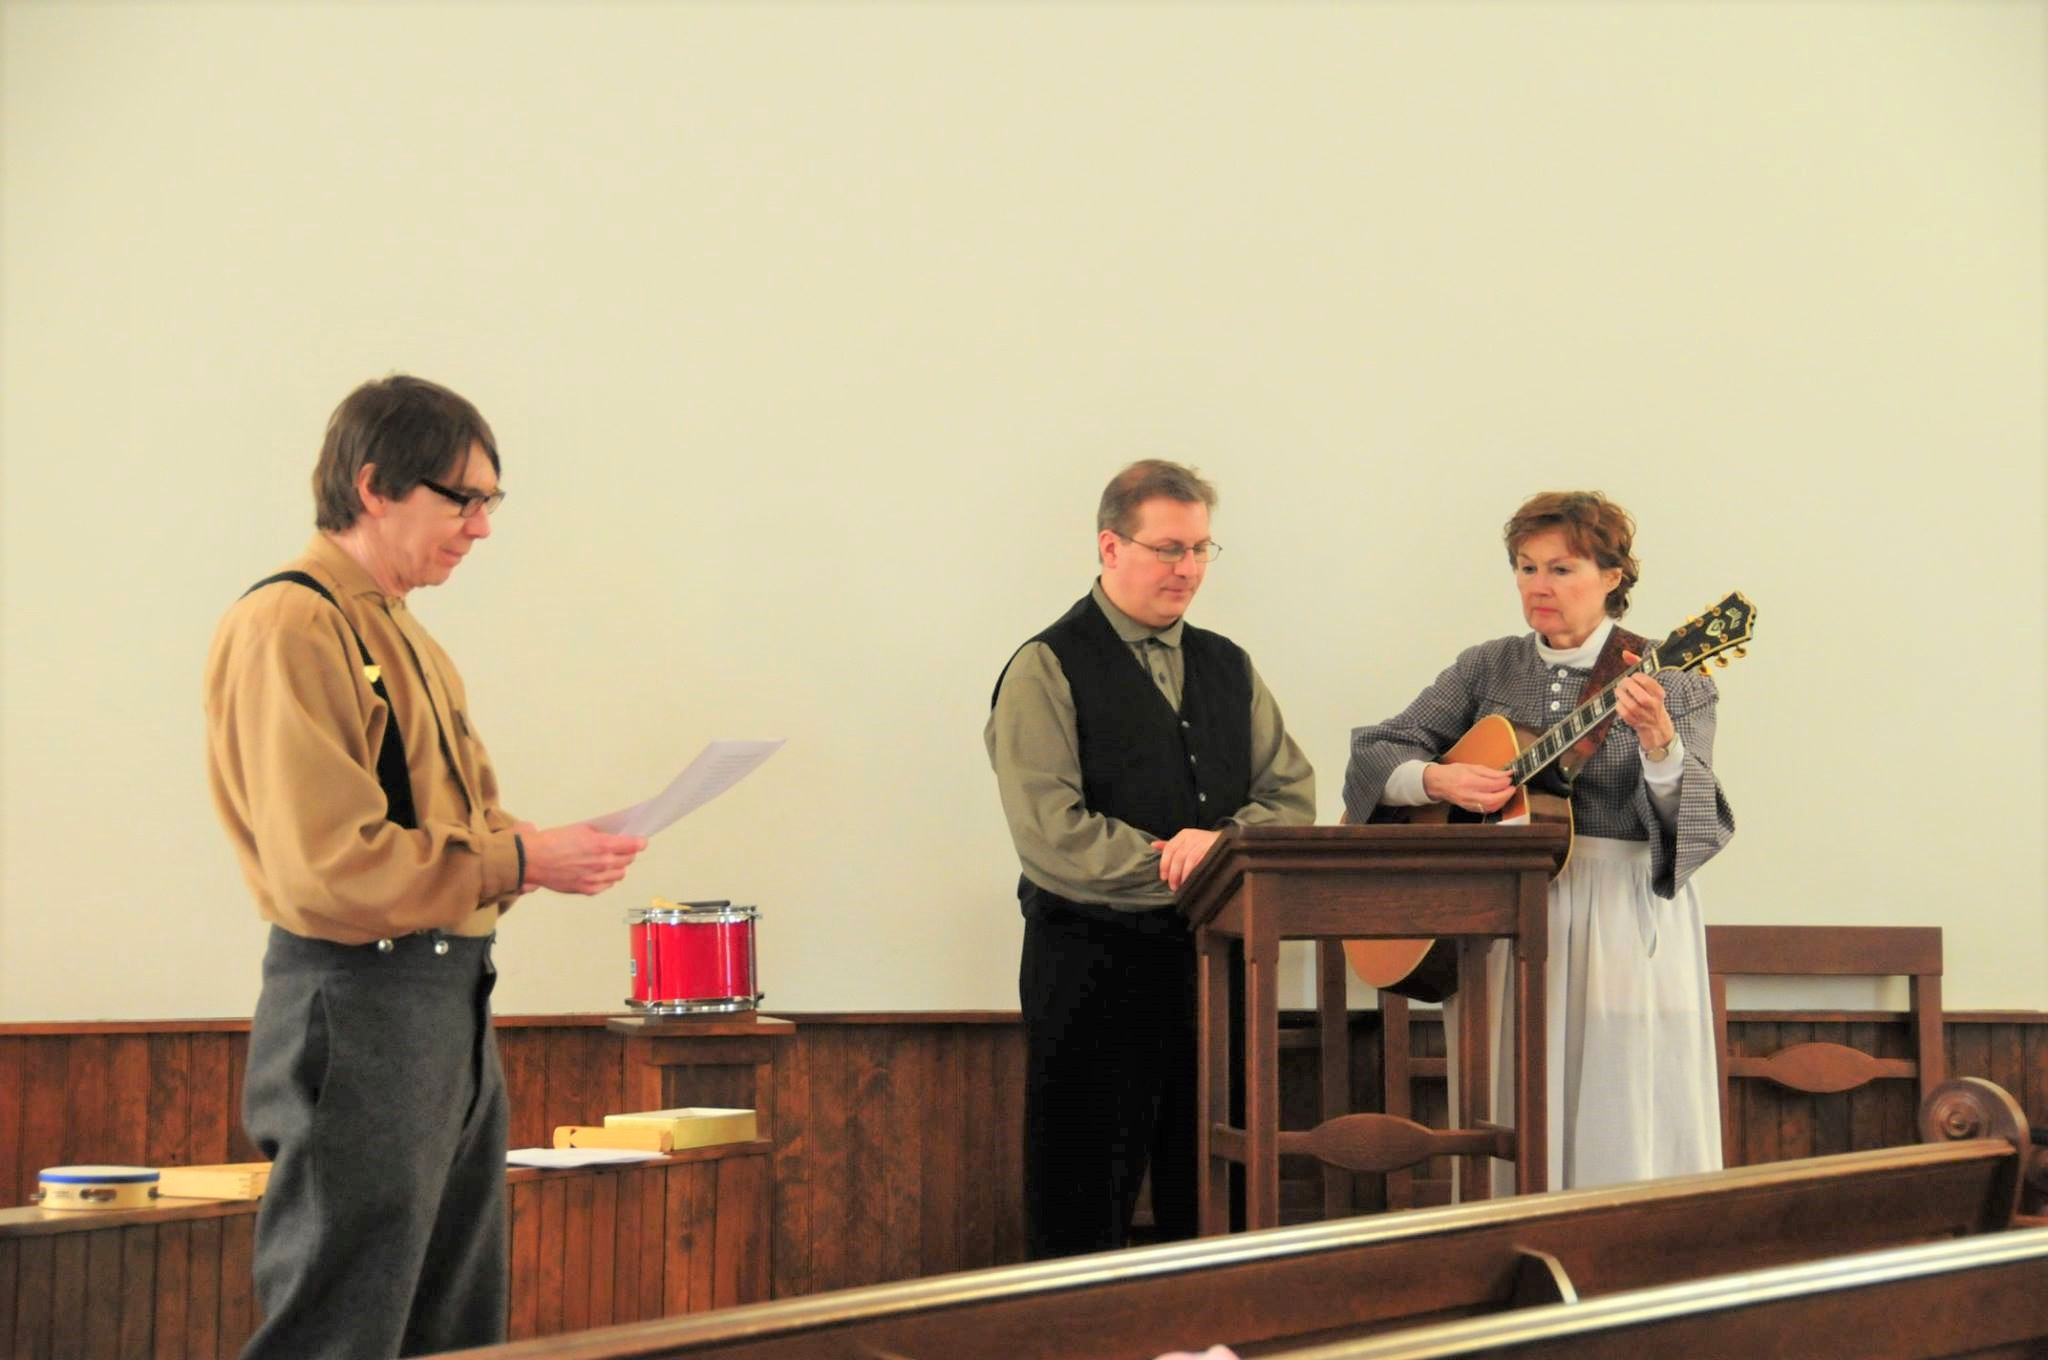 Village staff share 19th century songs